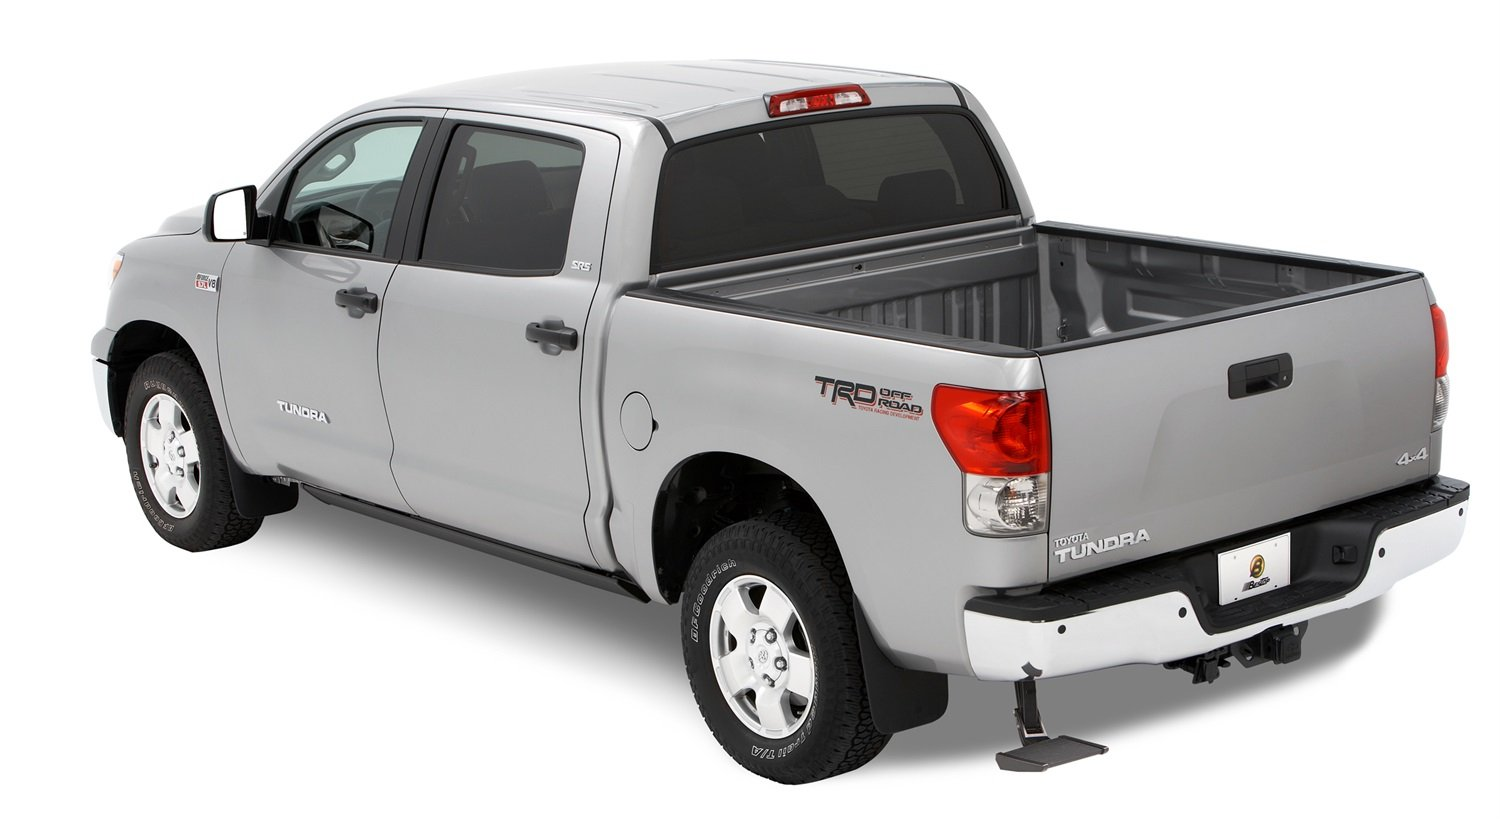 Bestop 75305-15 Rear-Mount Trekstep for 2007-2018 Toyota Tundra requires factory-installed hitch